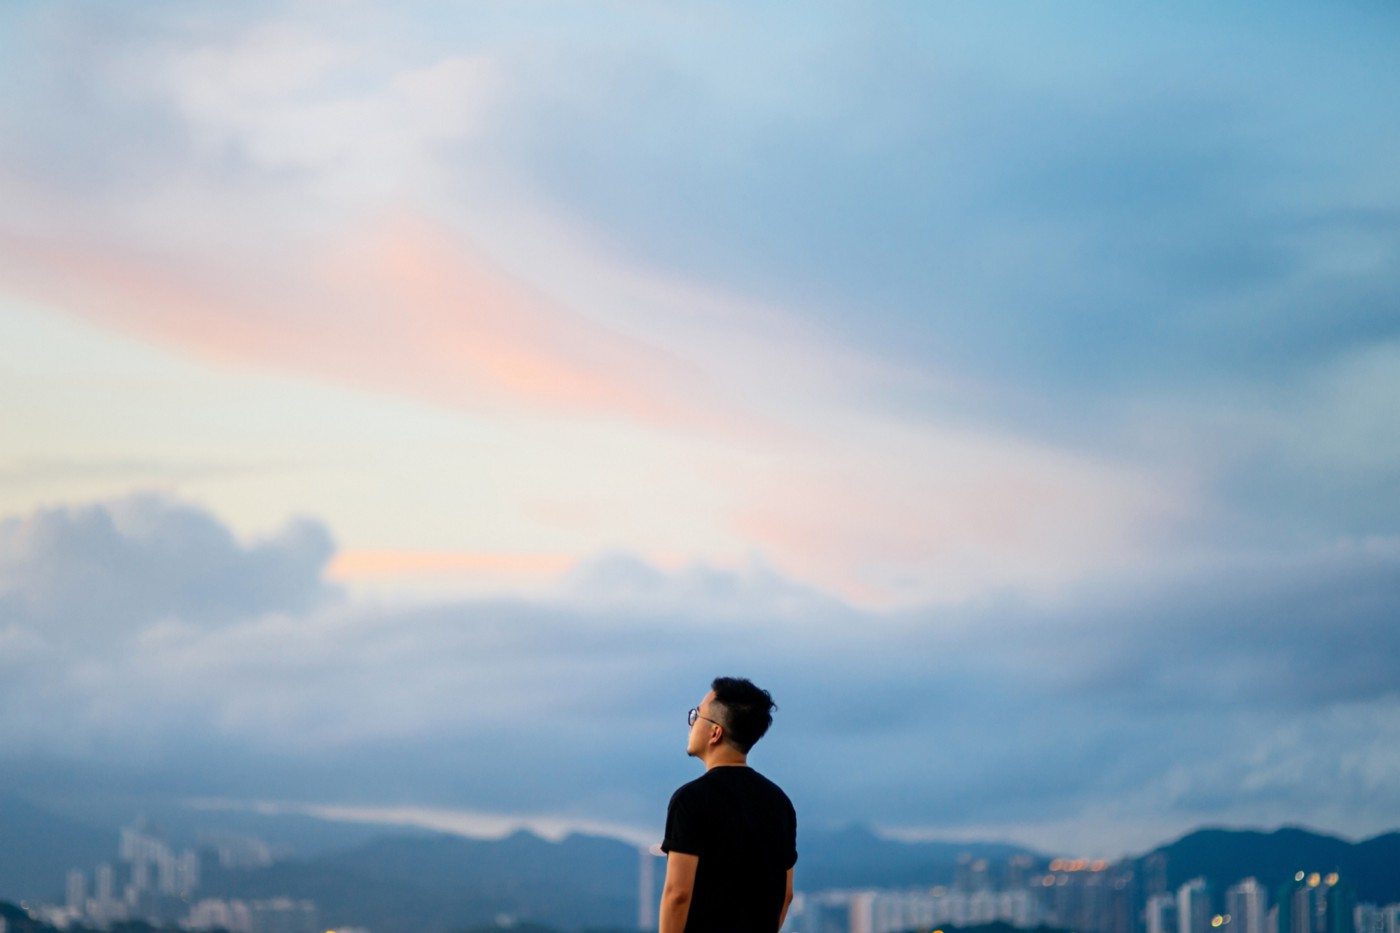 A man looks out at the sky and cityscape.